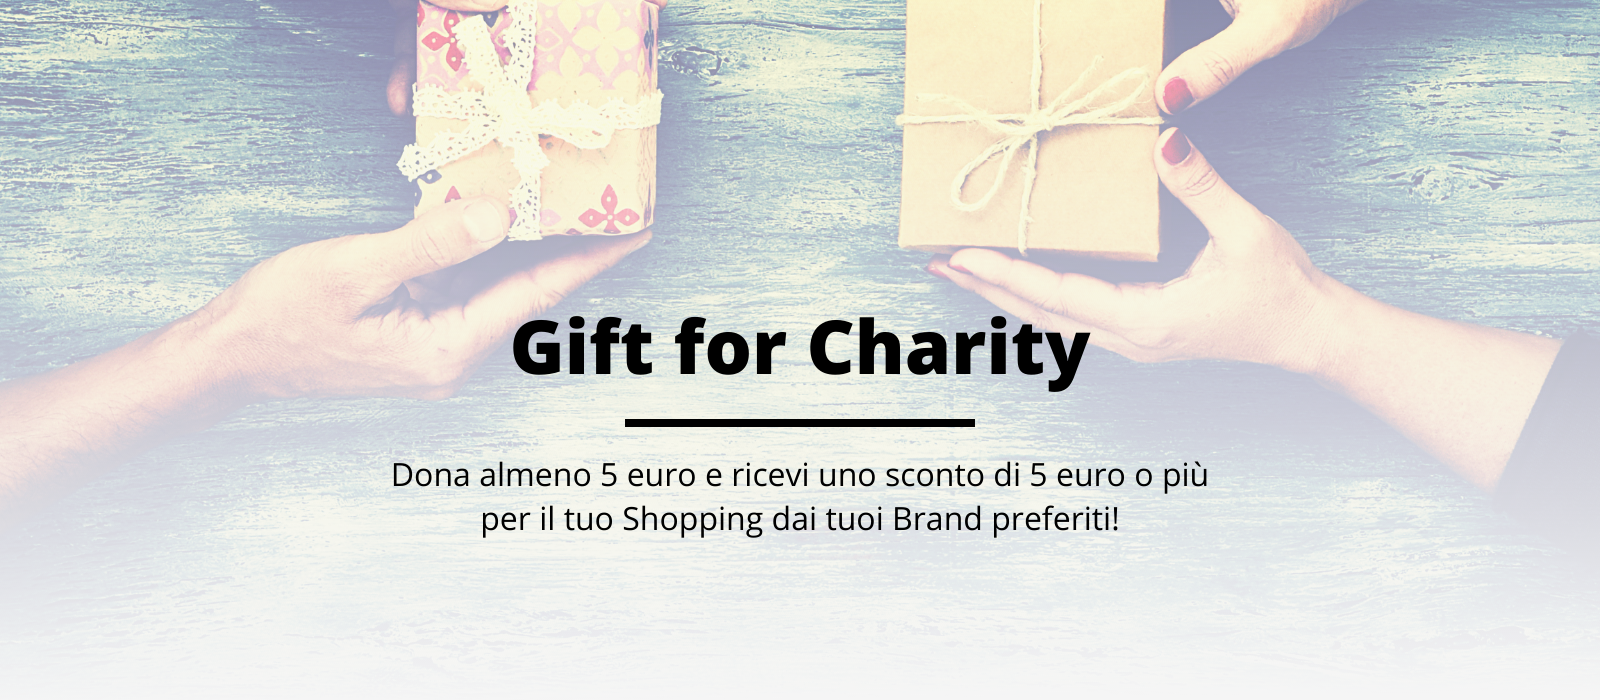 Gift for Charity